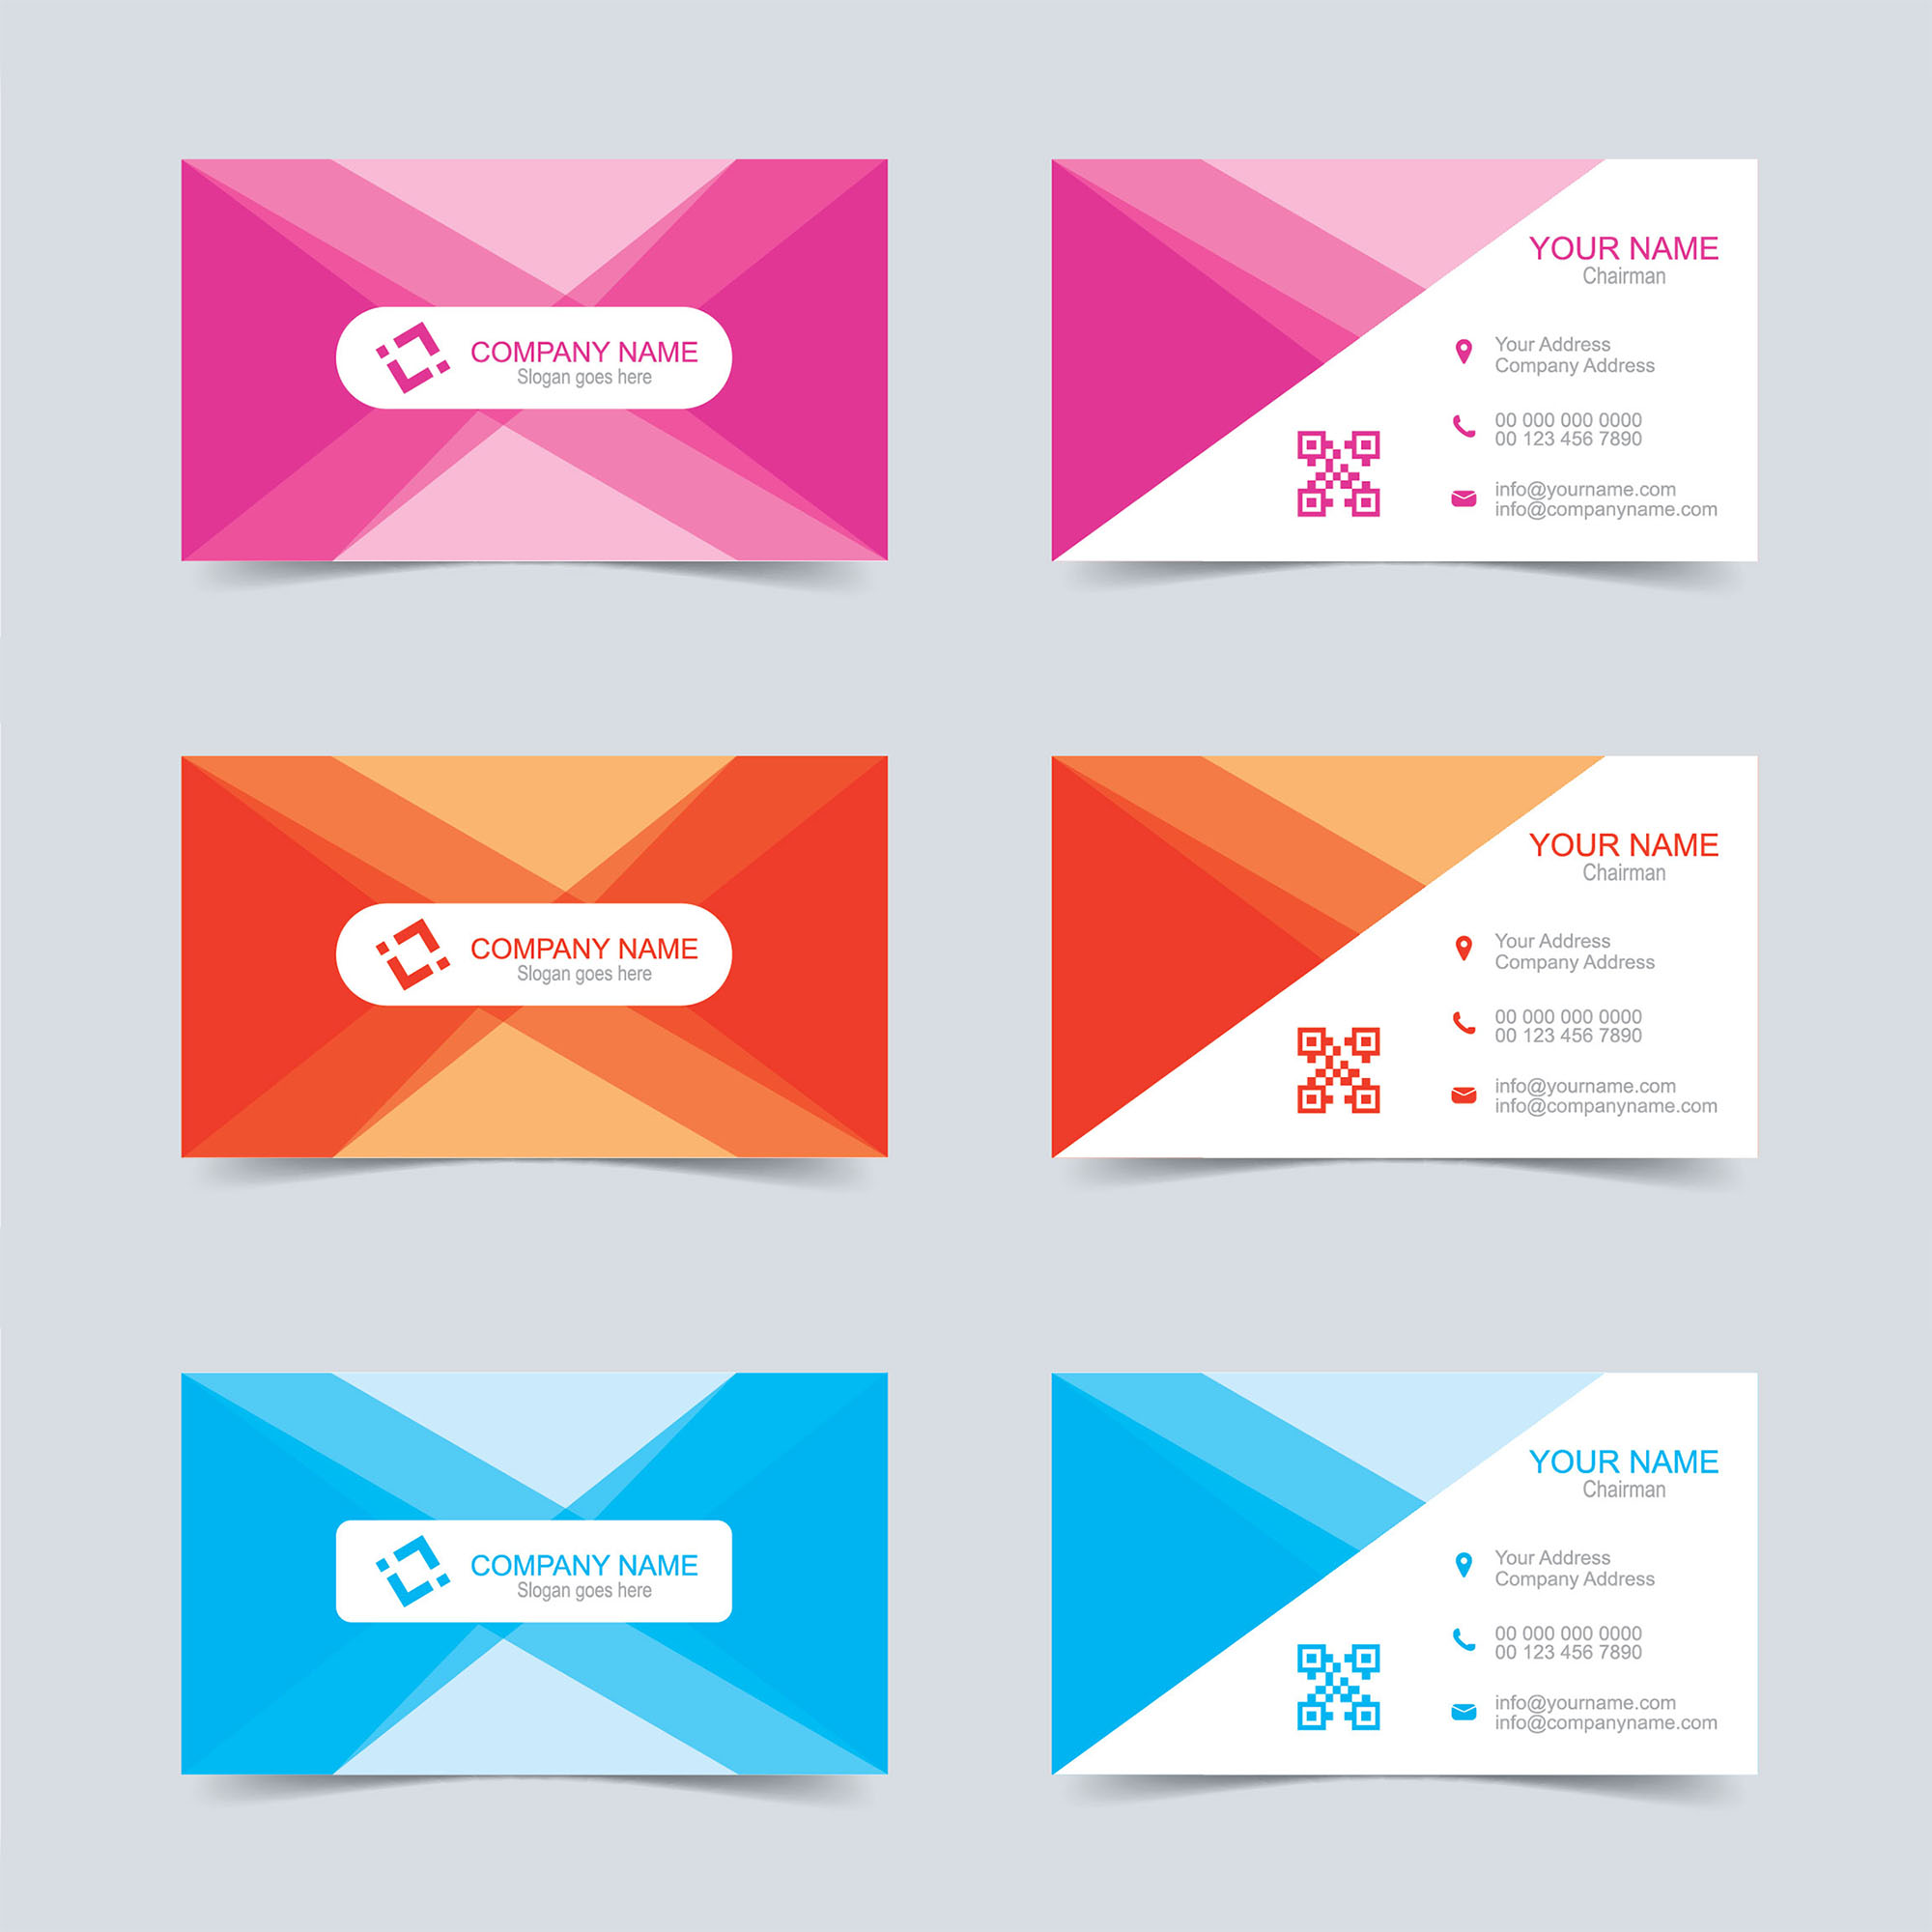 Vector business card template free download wisxi business card business cards business card design business card template design templates wajeb Choice Image